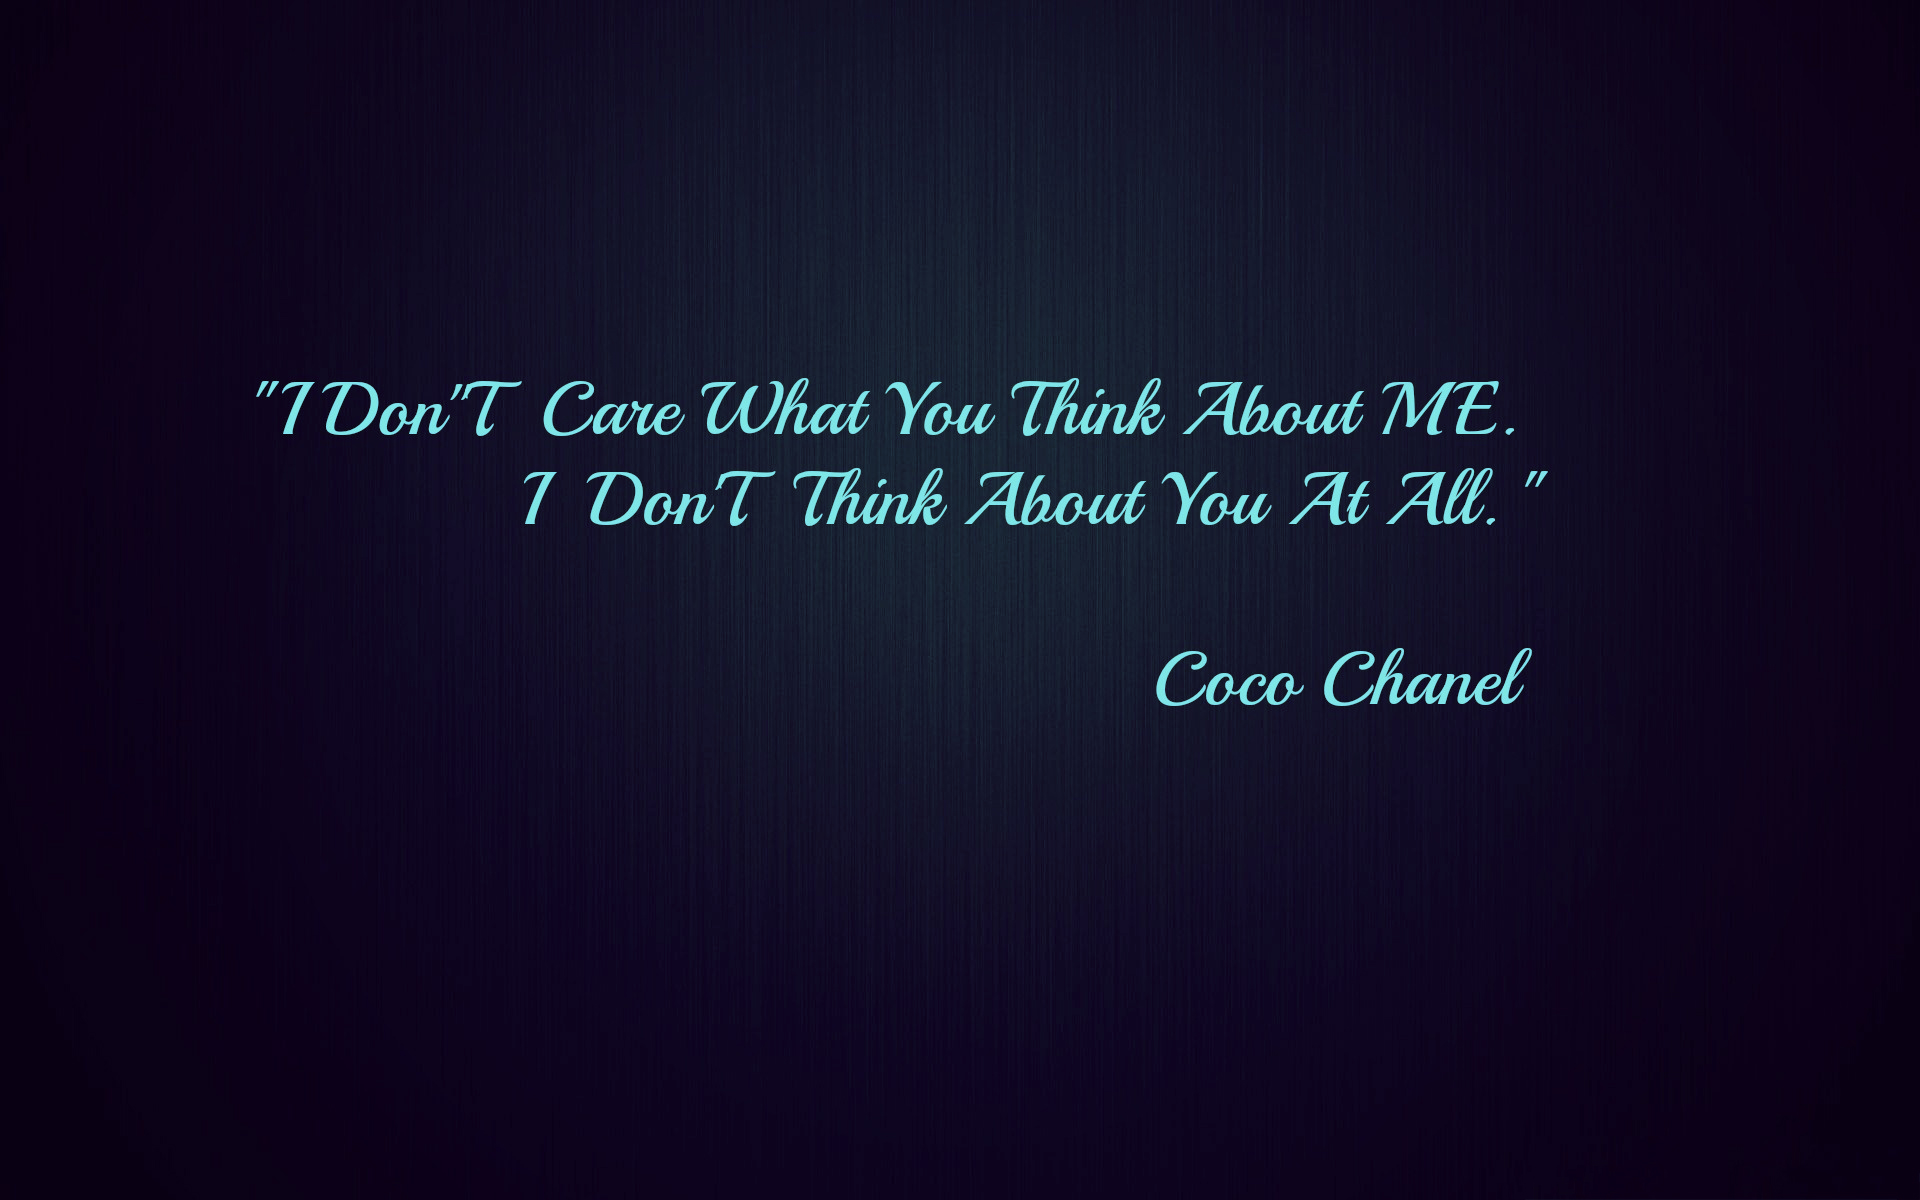 Coco Chanel Quotes Wallpaper